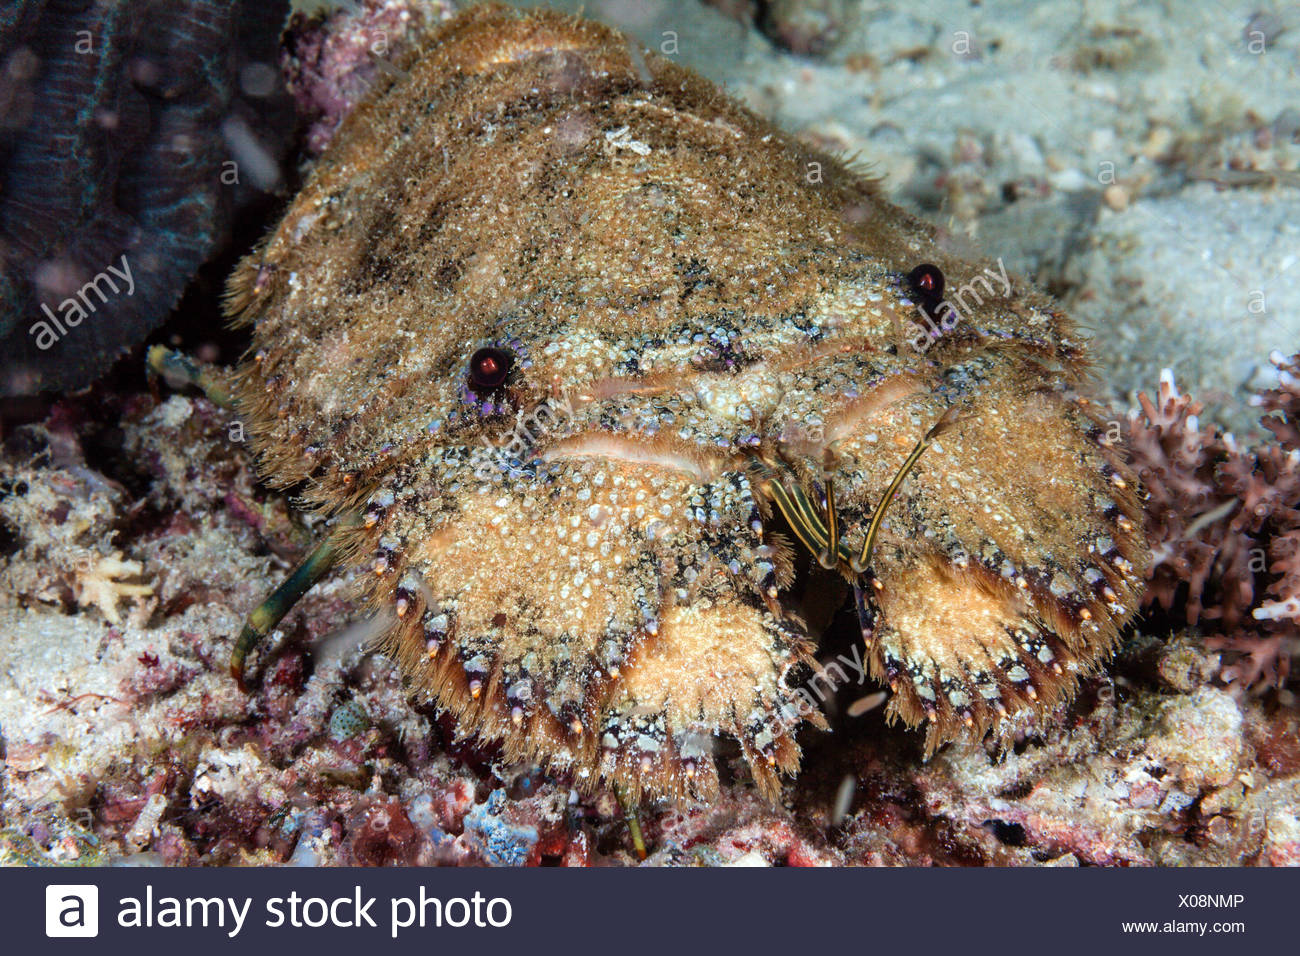 Slipper Lobster, Parrabacus japonicus, Ambon, Moluccas, Indonesia Stock Photo